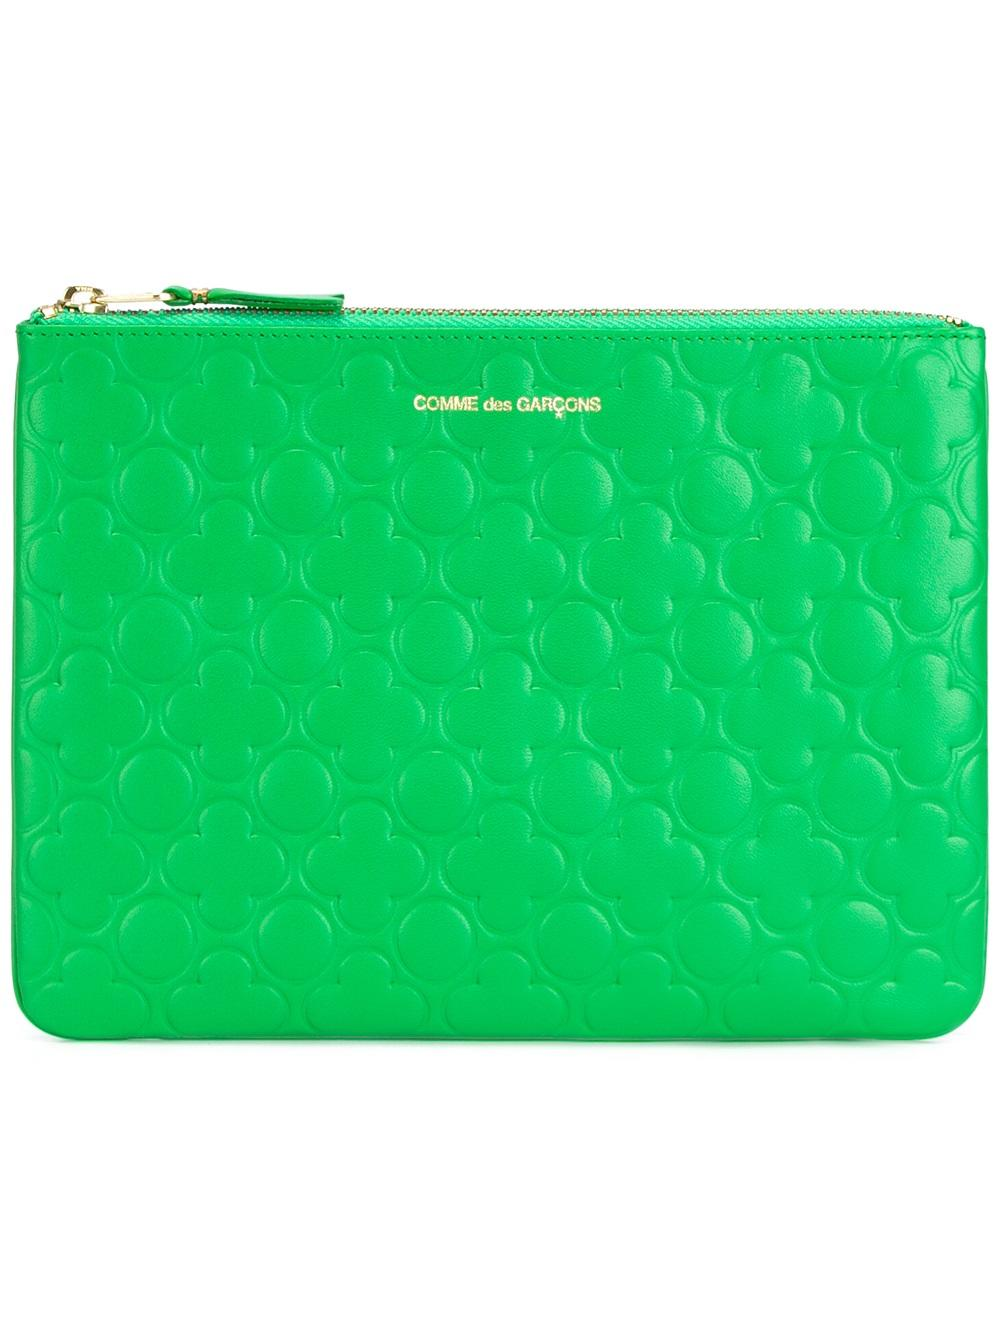 comme-des-garcons-coin-wallet.jpg